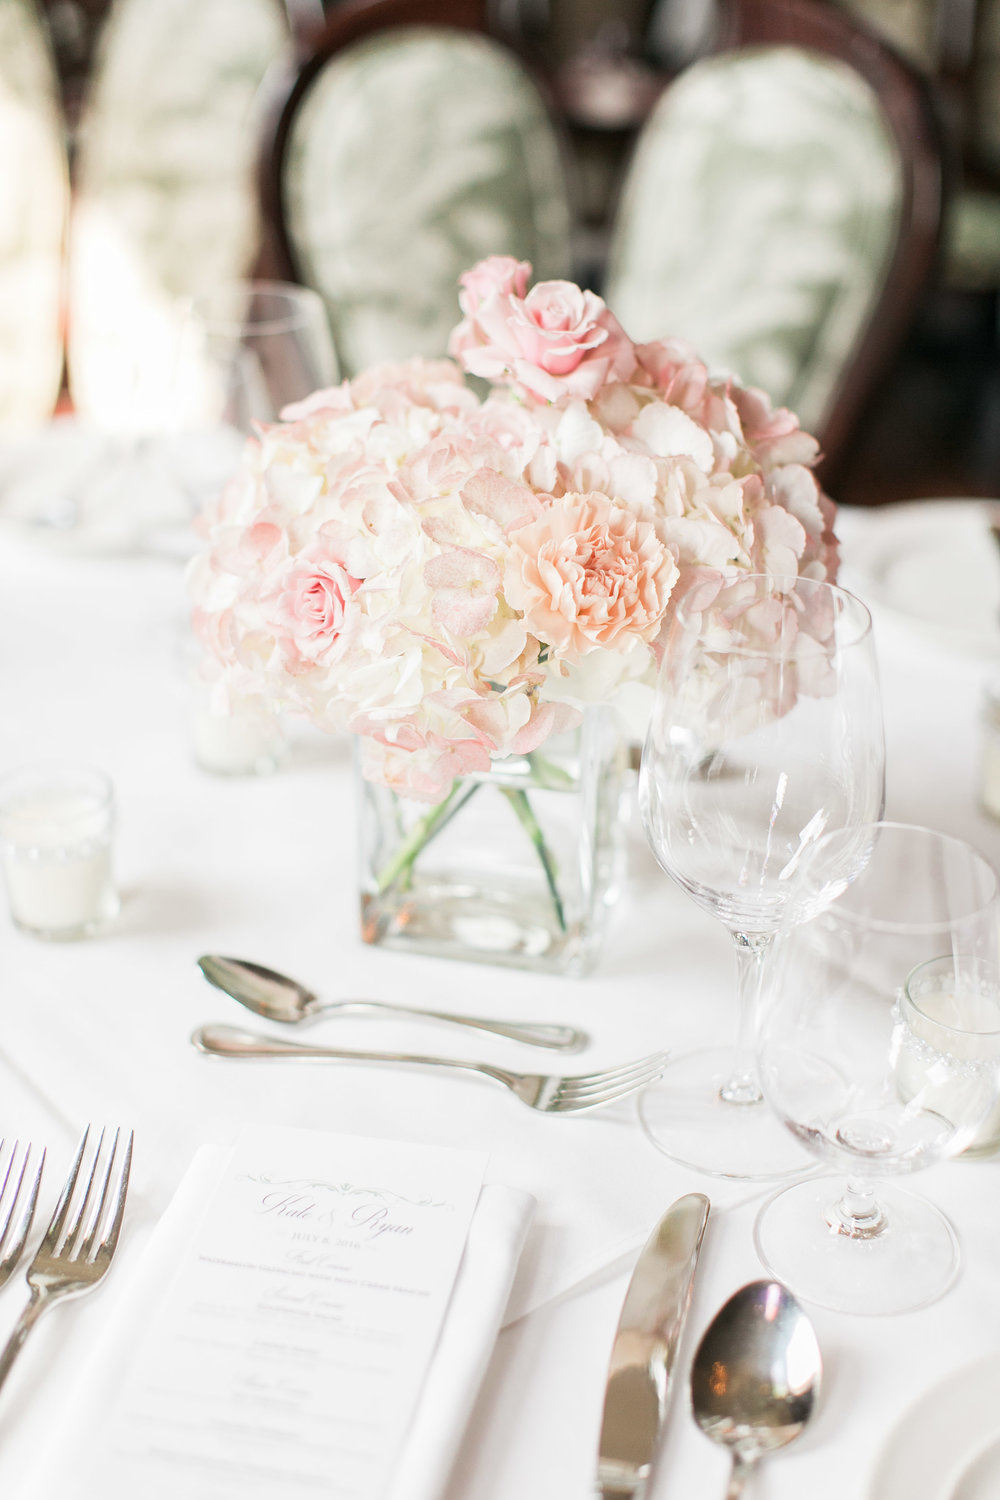 Romantic wedding decor at Edgewater Manor in Stoney Creek